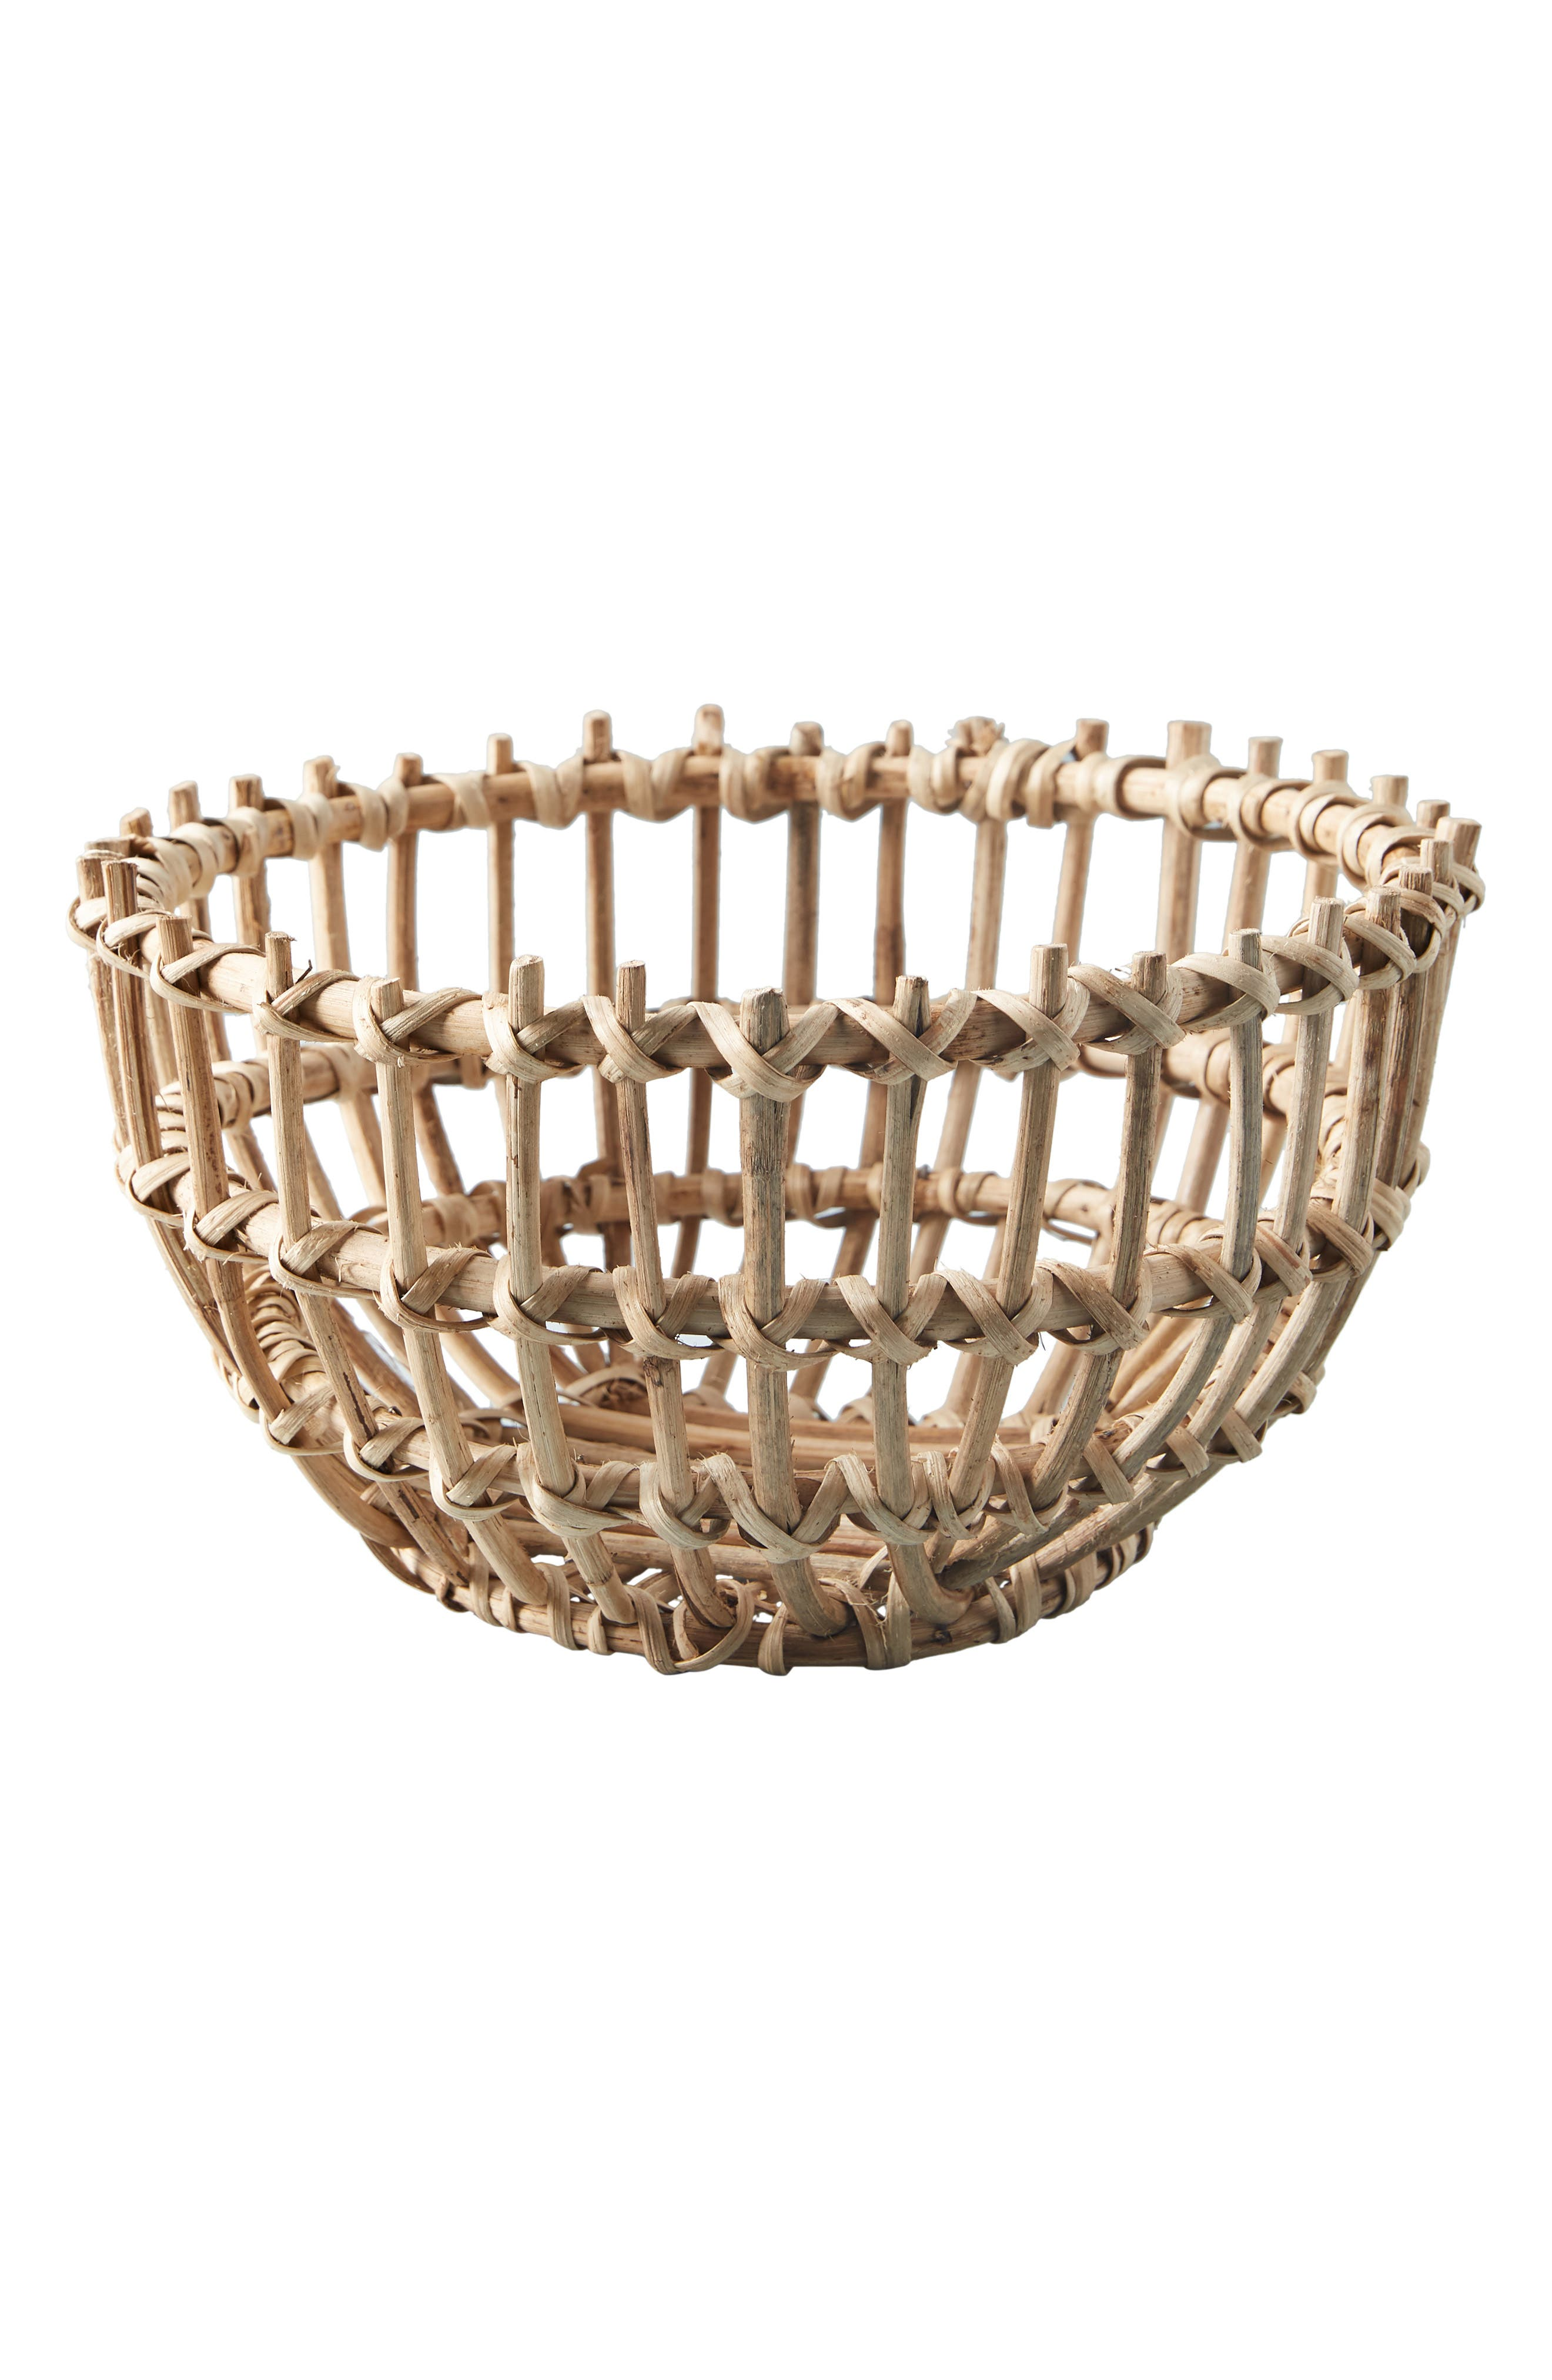 ANTHROPOLOGIE, Anthropology Woven Wooden Basket, Alternate thumbnail 4, color, BROWN